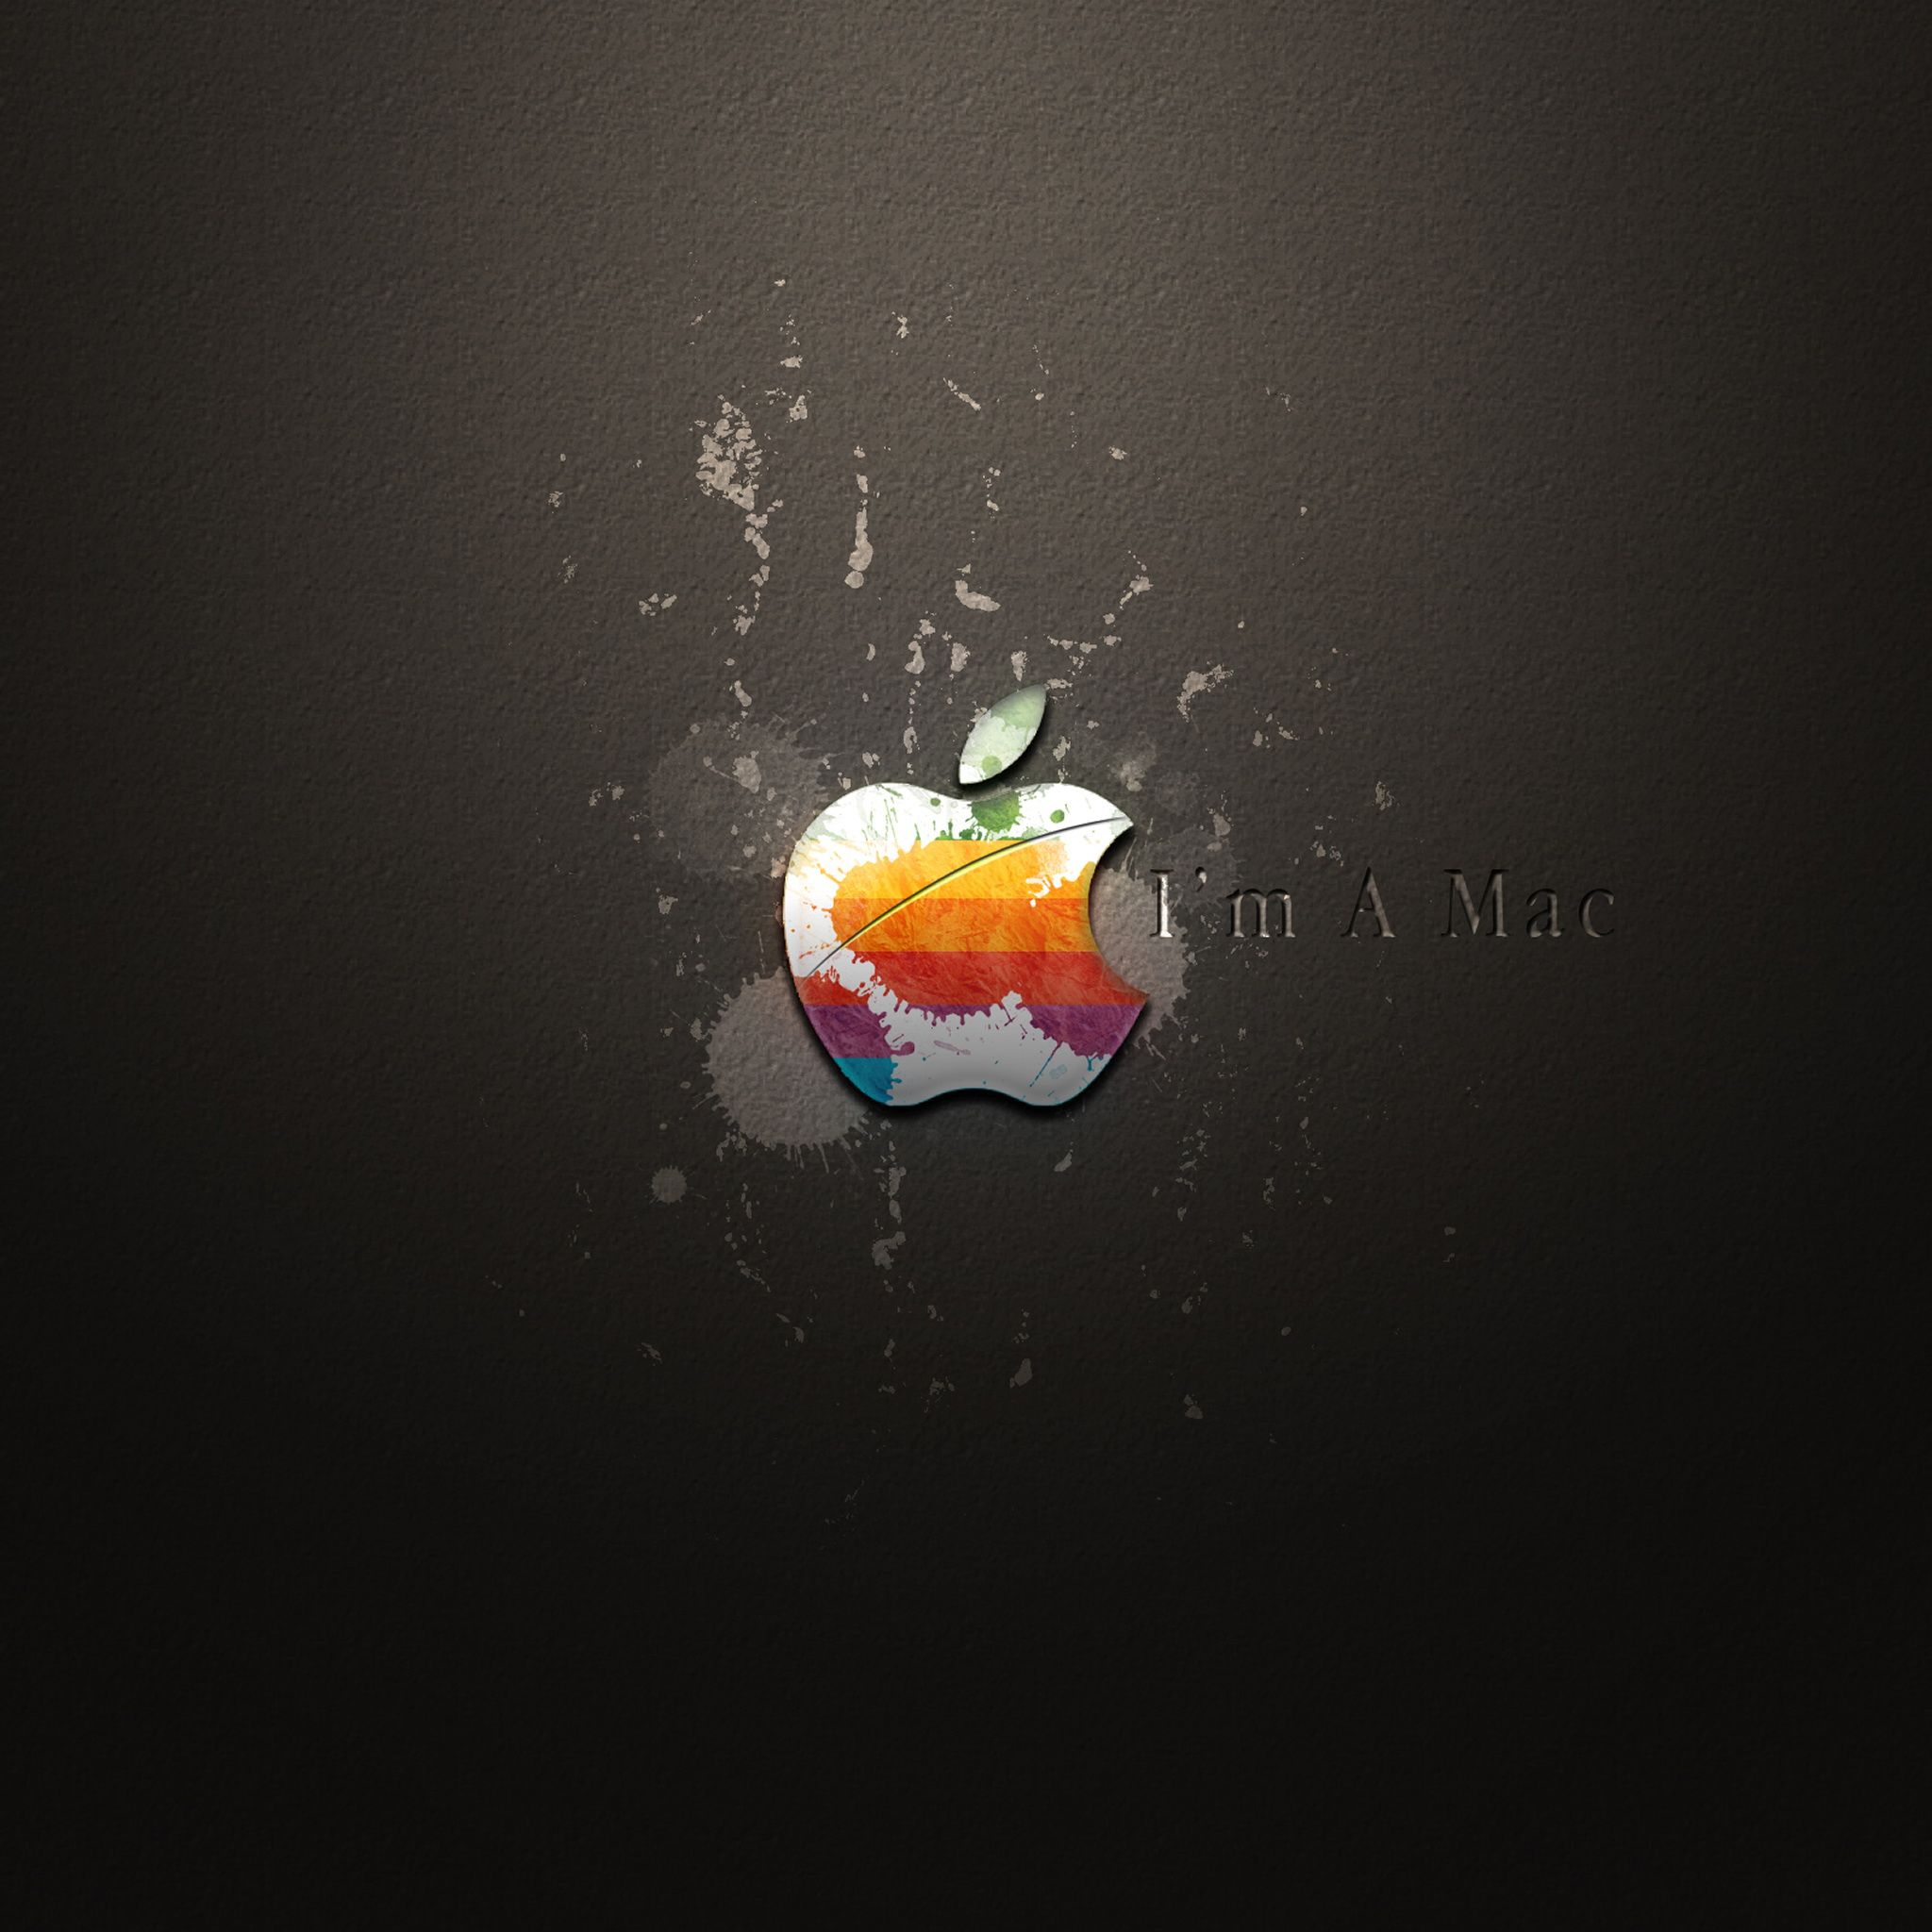 spoof apple mac logo ipad air tablet #wallpaper ~ #apple #ipadair